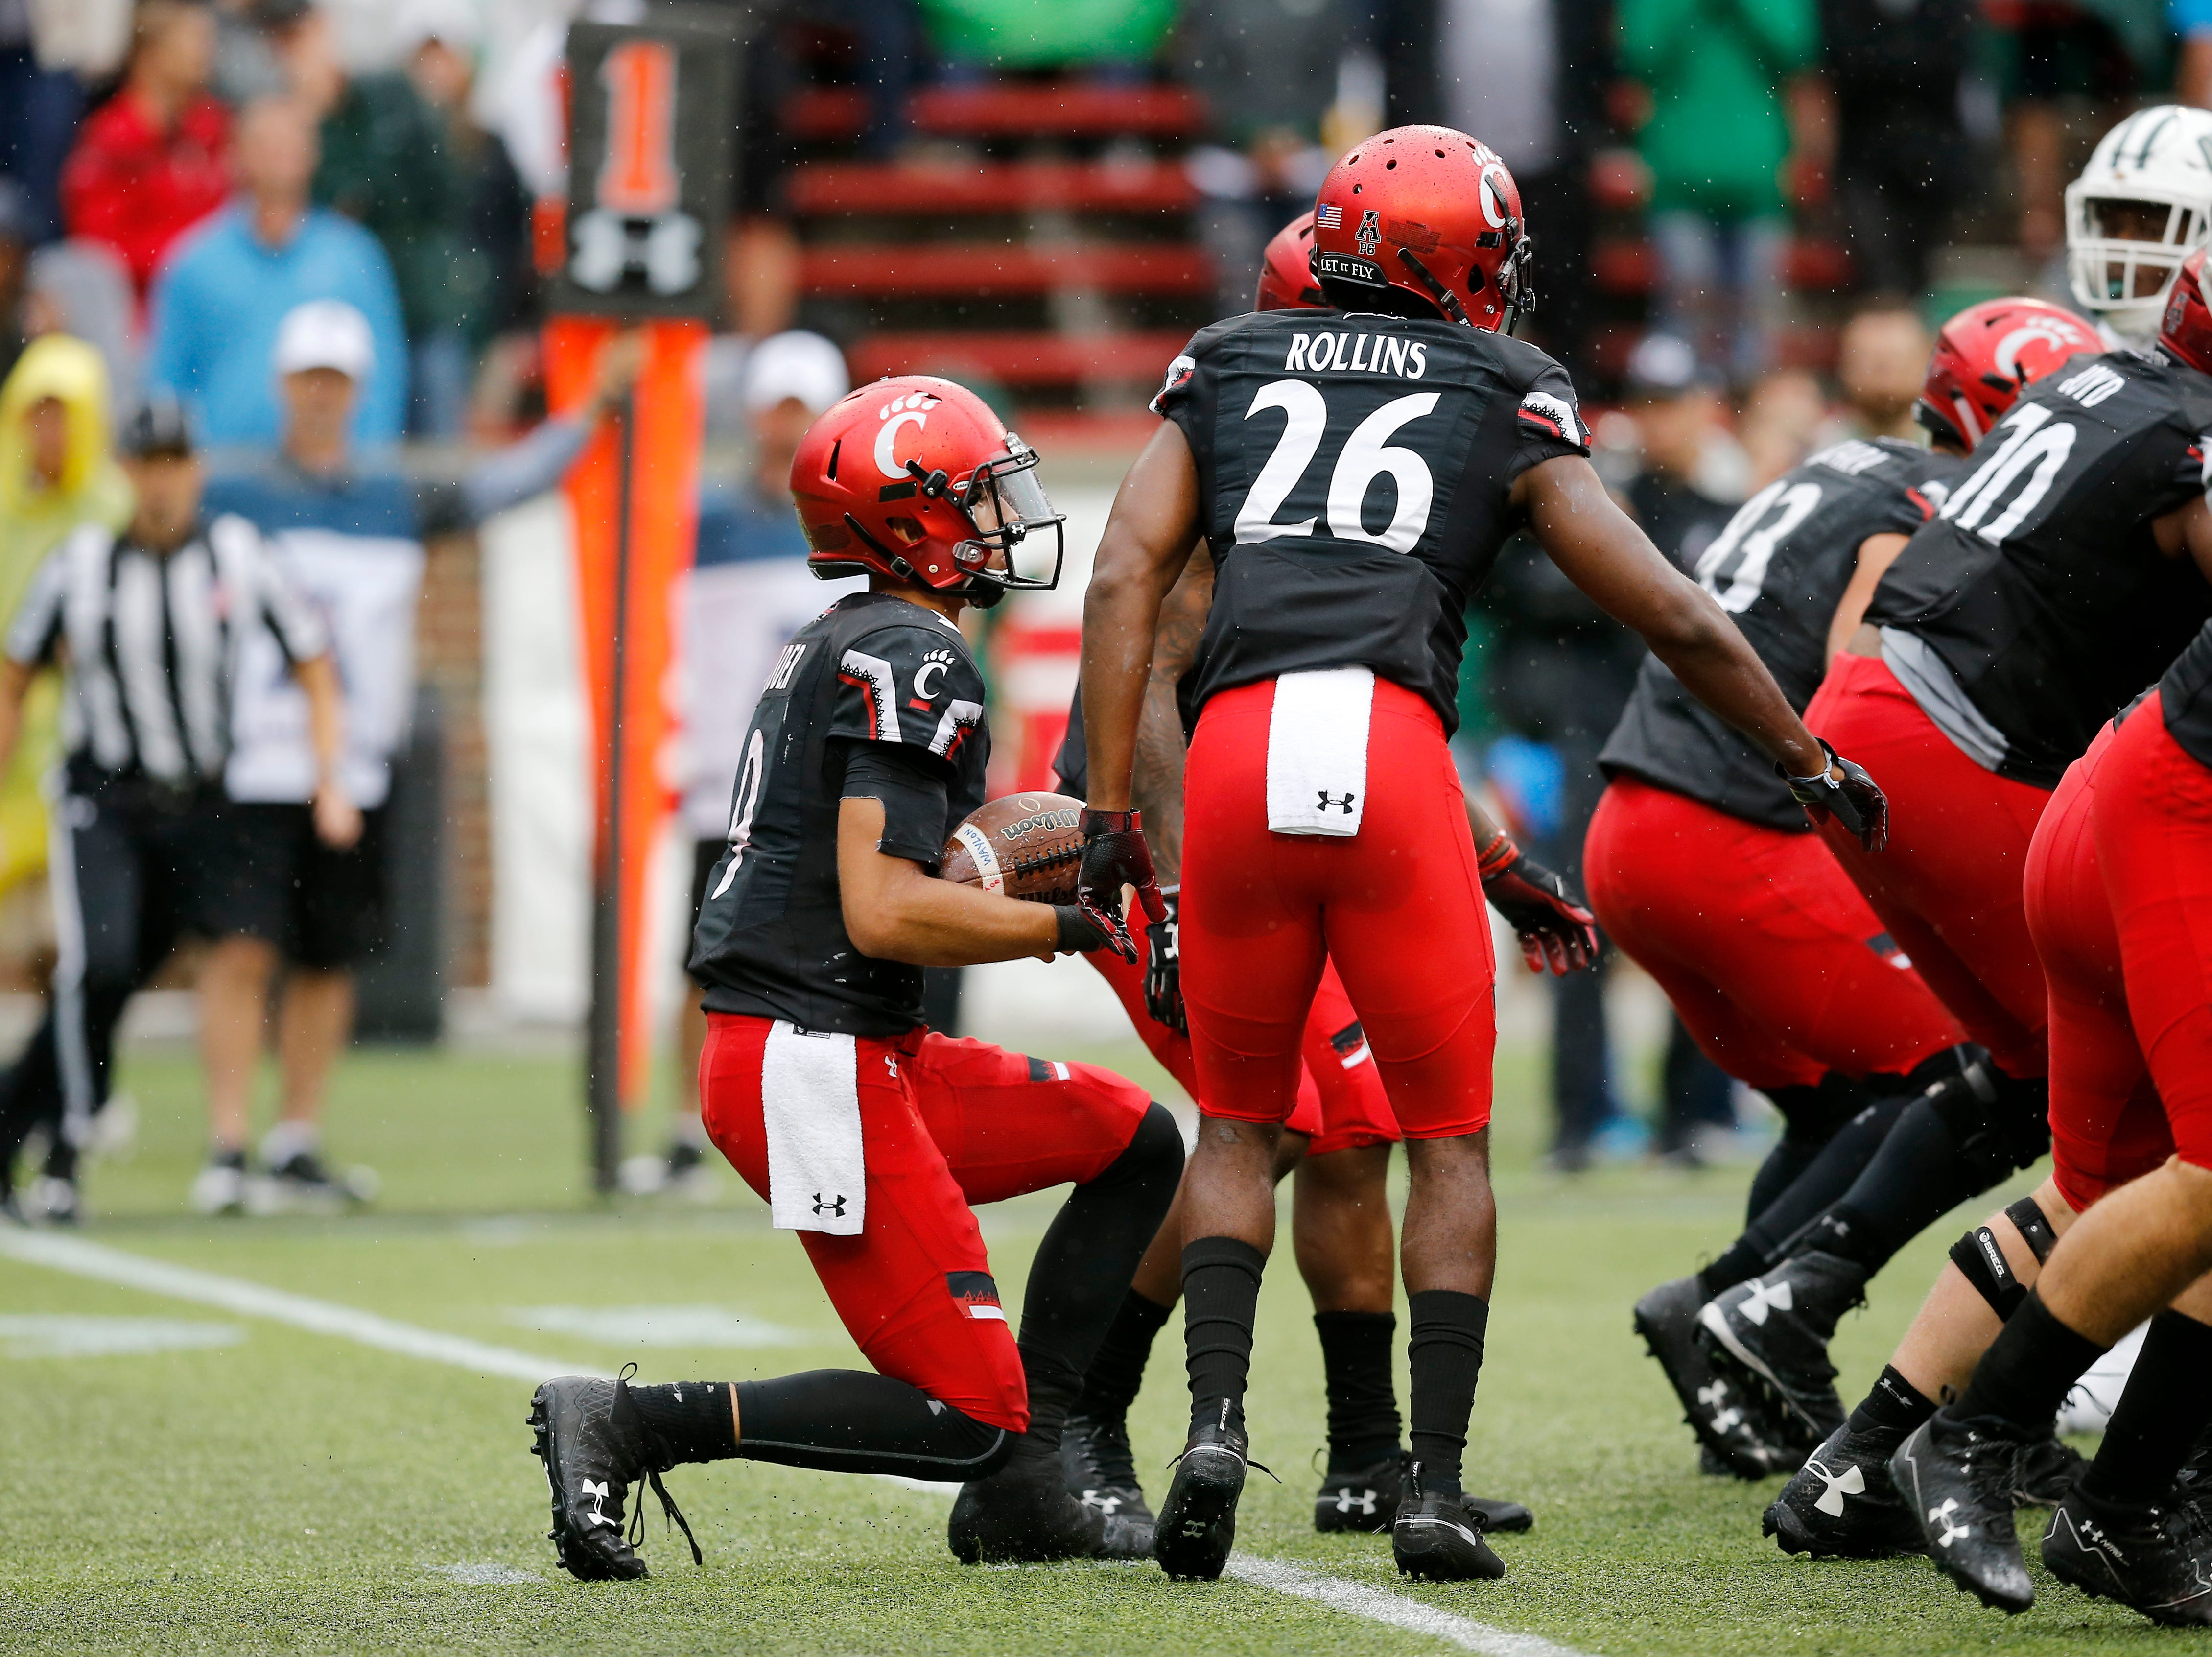 Cincinnati Bearcats quarterback Desmond Ridder (9) takes a knee in the victory formation to run out the clock in the fourth quarter of the NCAA football game between the Cincinnati Bearcats and the Ohio Bobcats at Nippert Stadium on the University of Cincinnati campus in Cincinnati on Saturday, Sept. 22, 2018. The Bearcats overcame a 24-7 deficit at halftime to win 34-30, improving to 4-0 on the season.